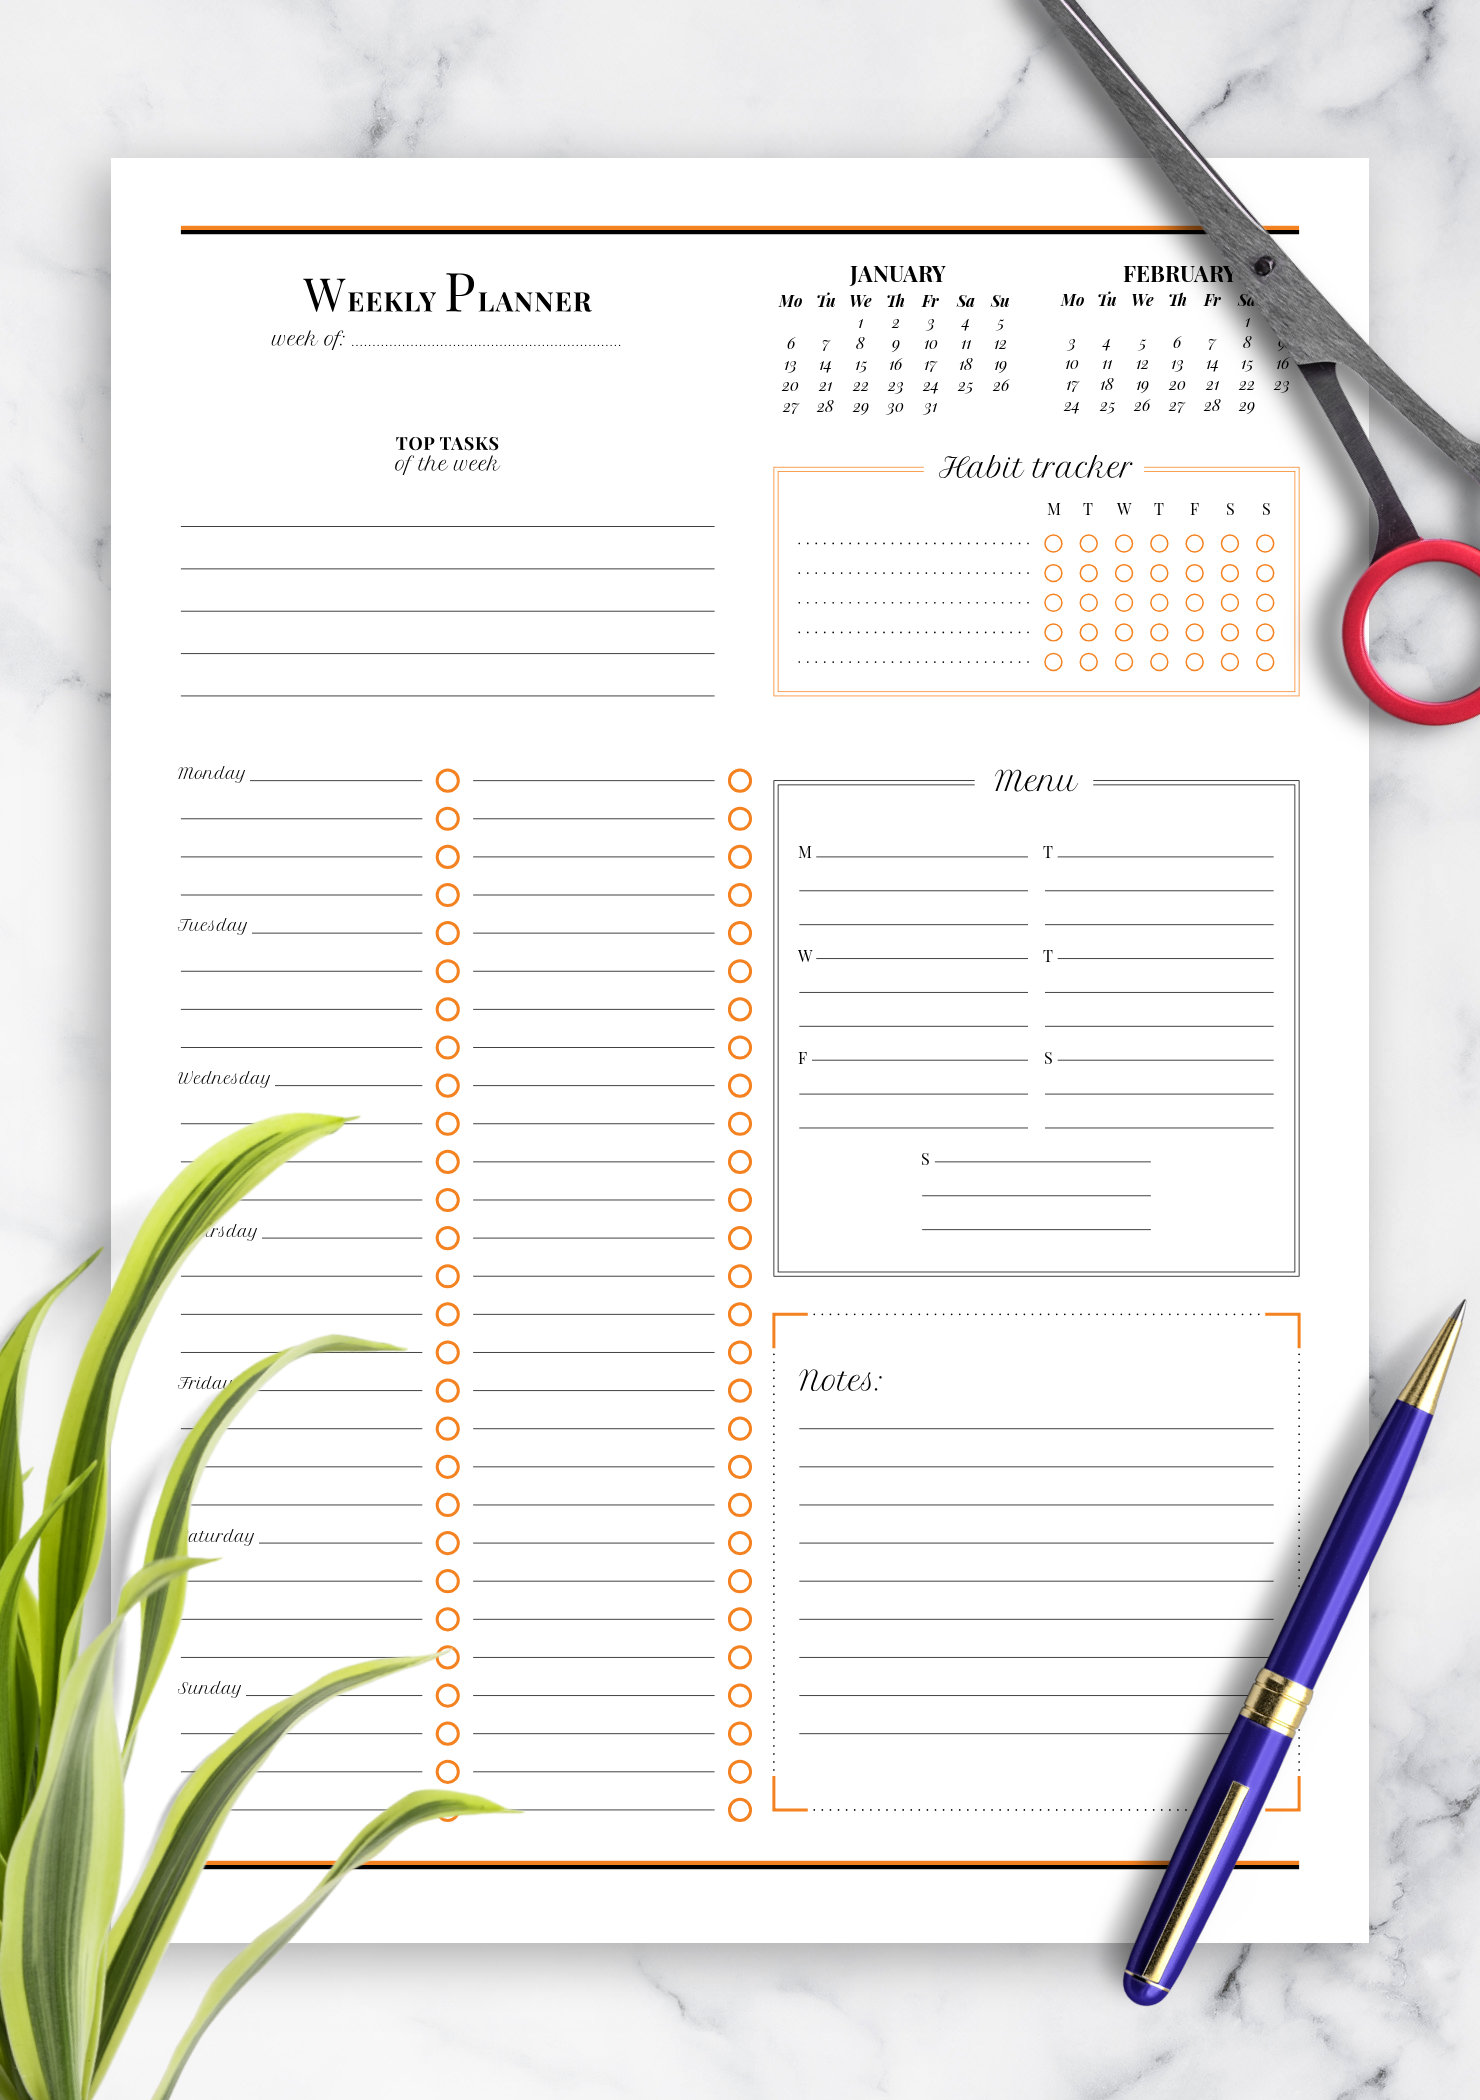 image relating to Habit Tracker Printable Free called Cost-free Printable Weekly planner with routine tracker PDF Down load